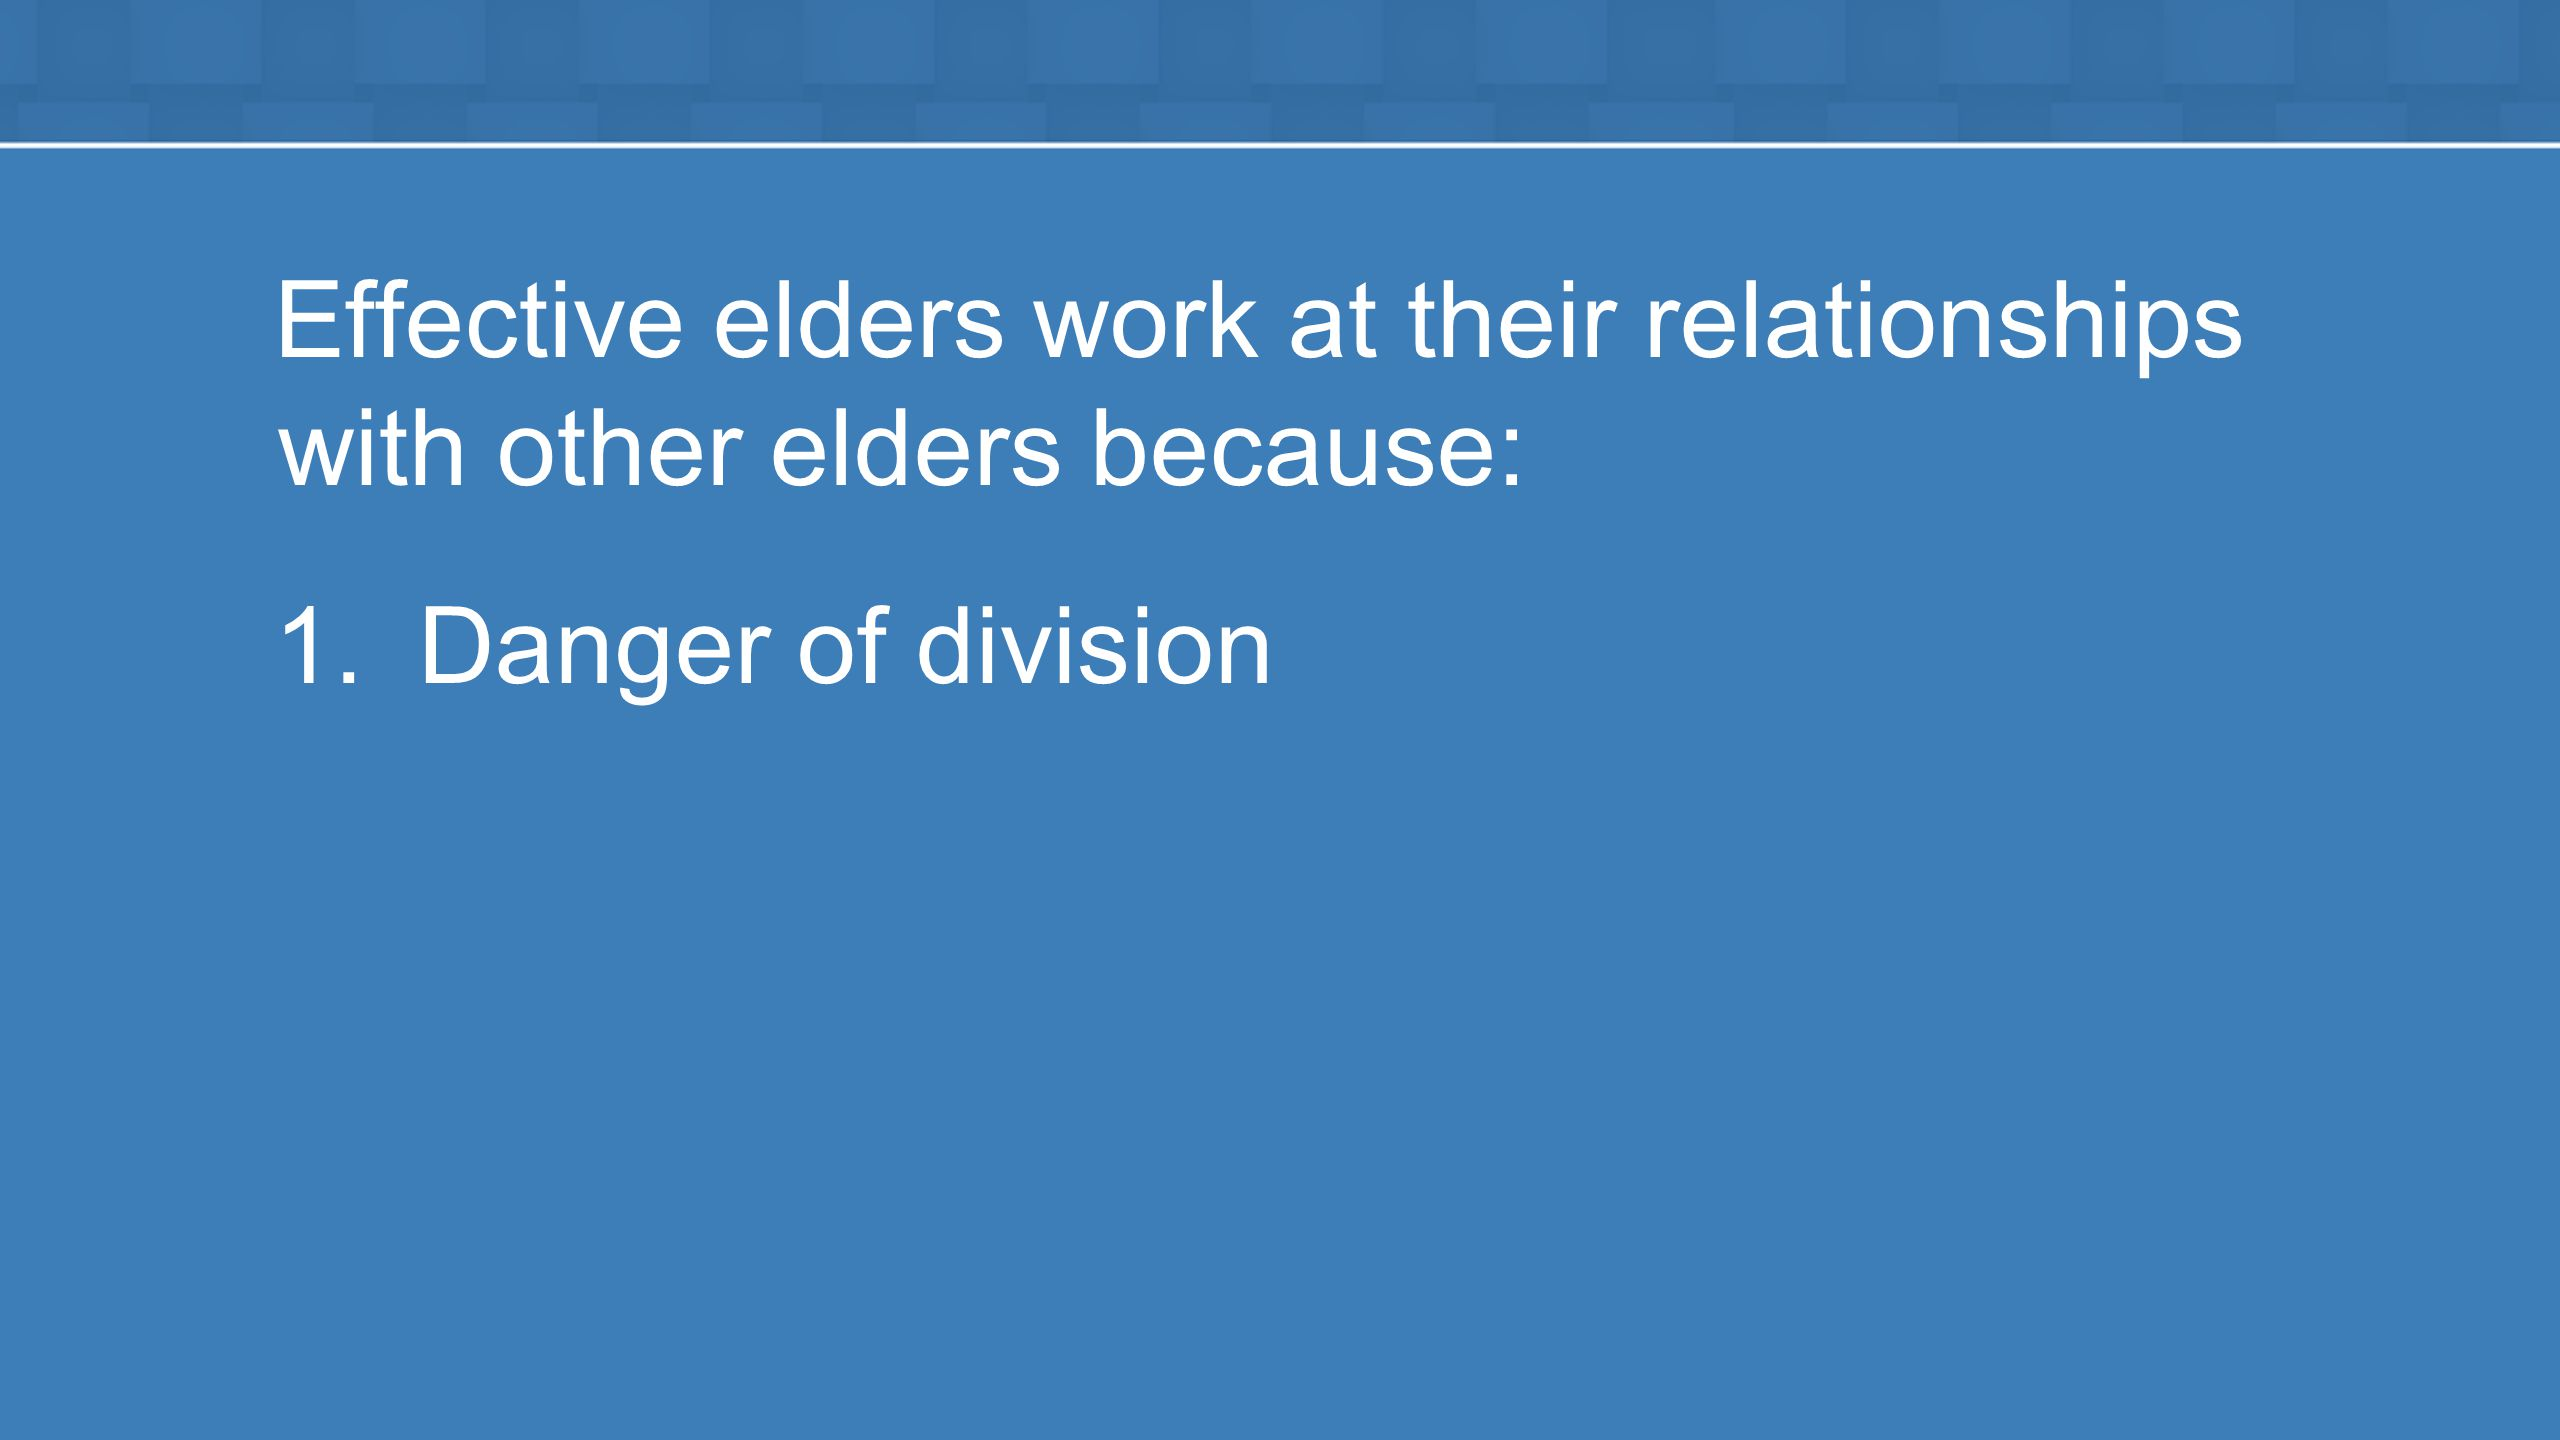 Effective elders work at their relationships with other elders because: 1.Danger of division